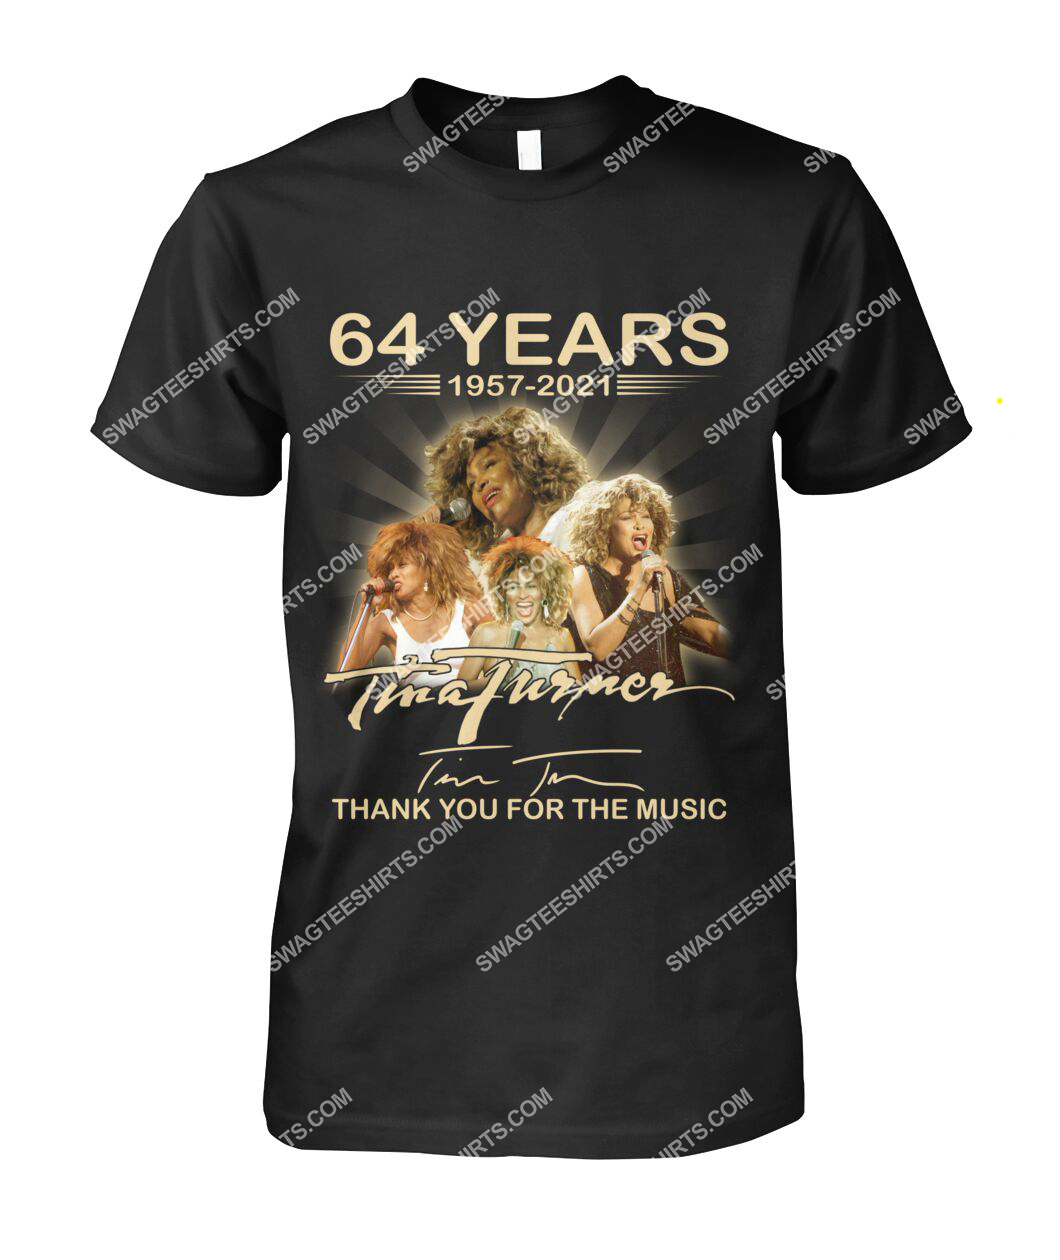 tina turner 64 years thank you for the music signature tshirt 1